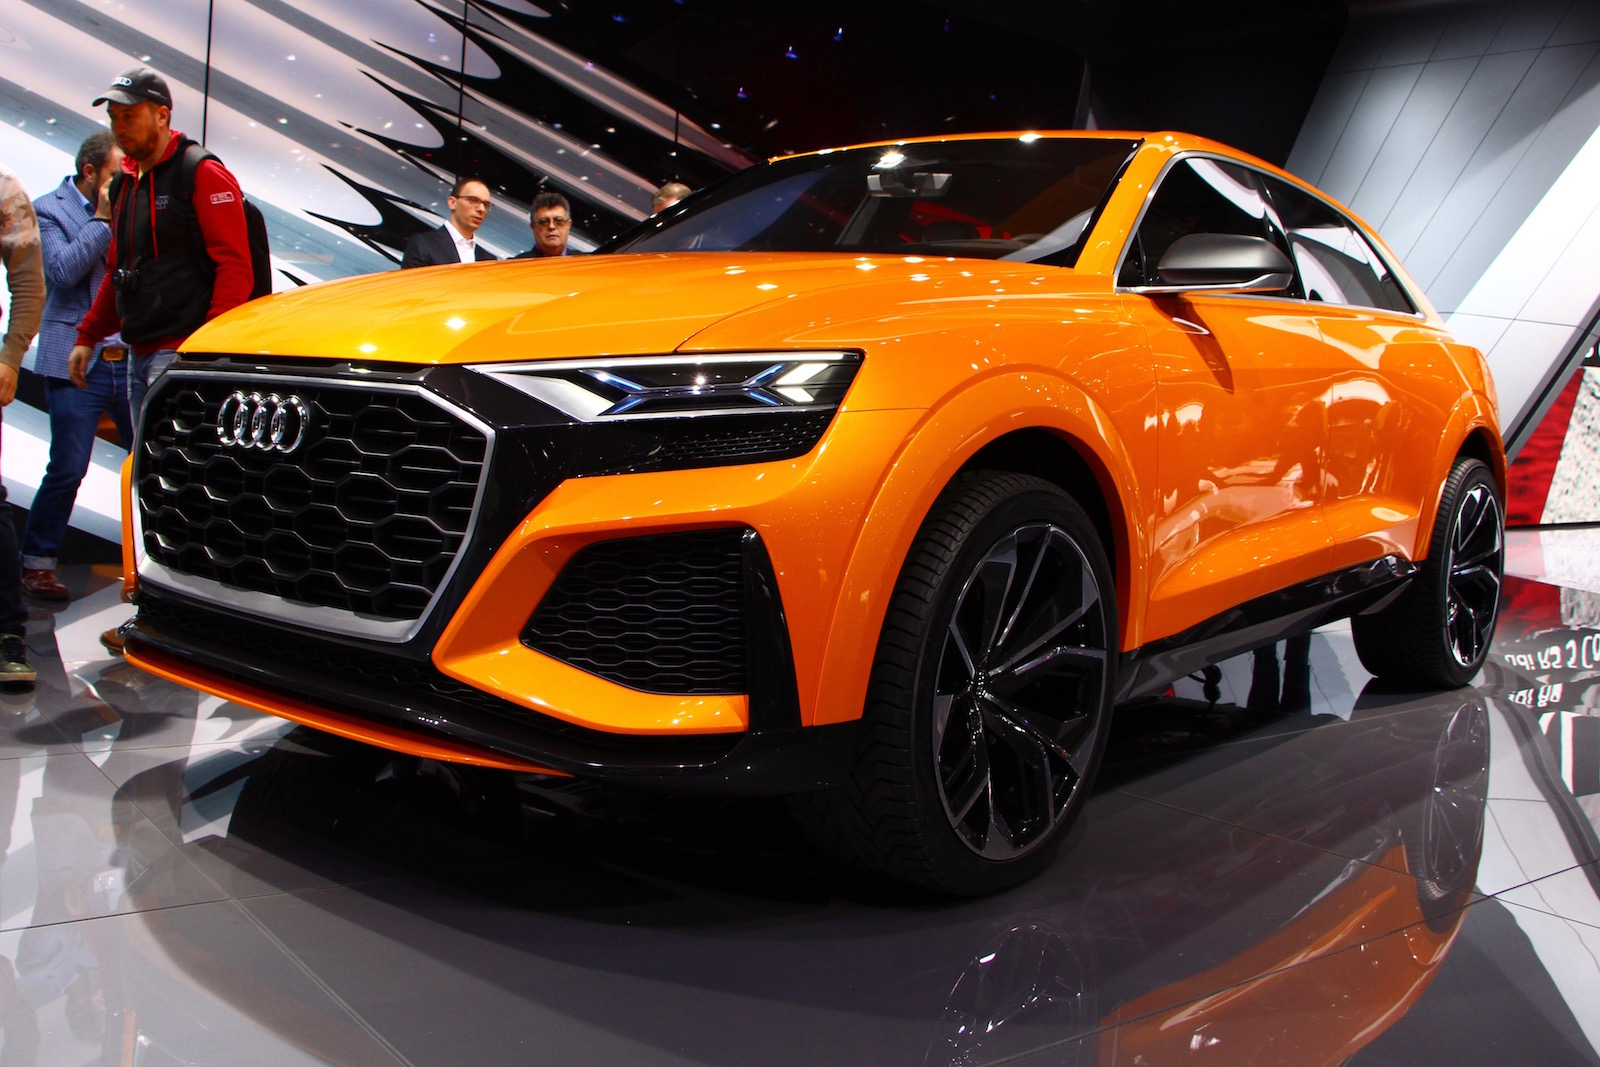 Mild Hybrid Audi Q8 Sport Concept Shows Closer To